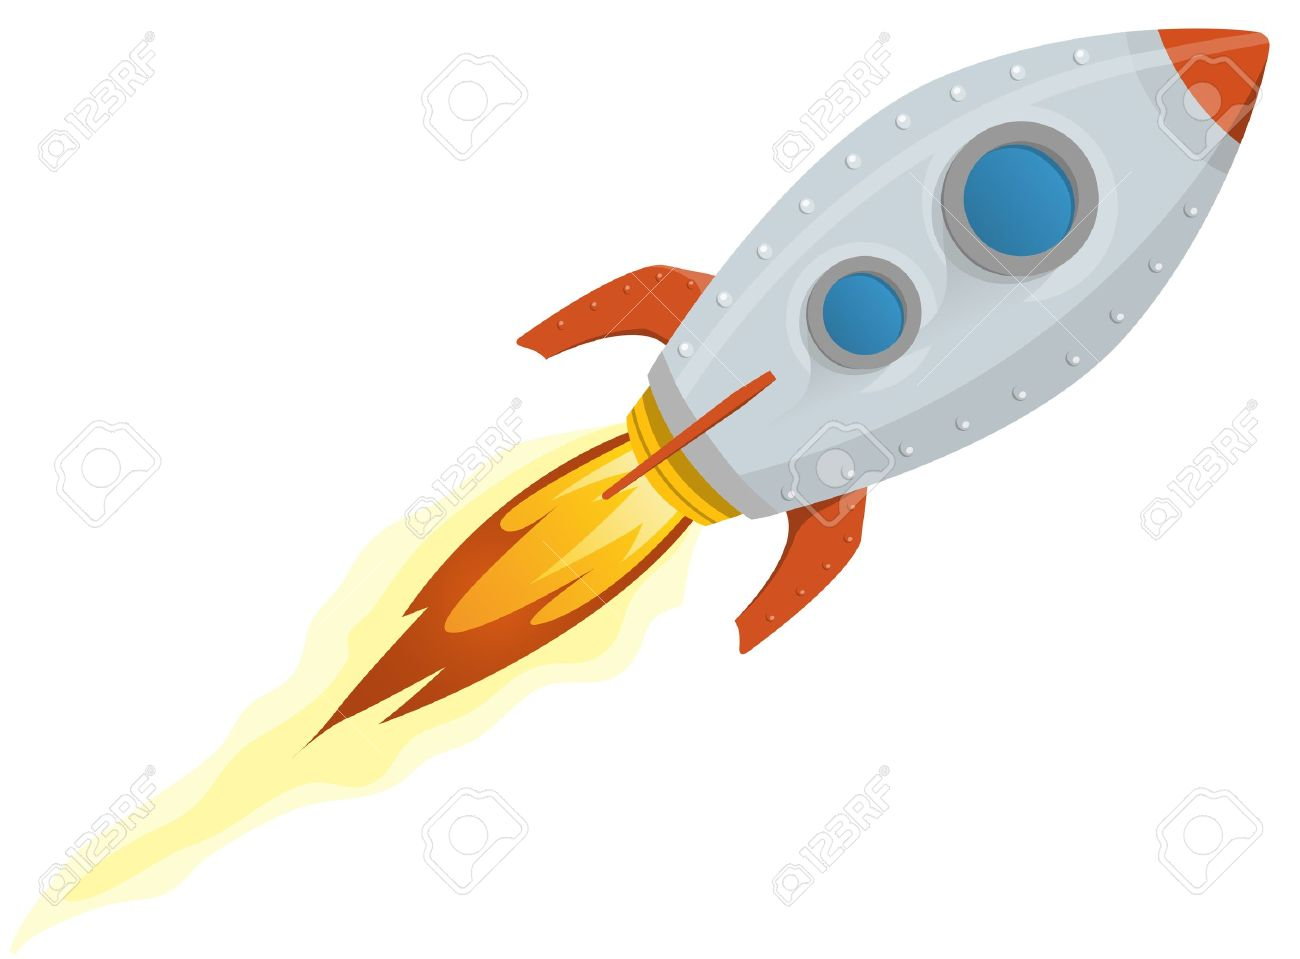 490 Rocket Ship free clipart.